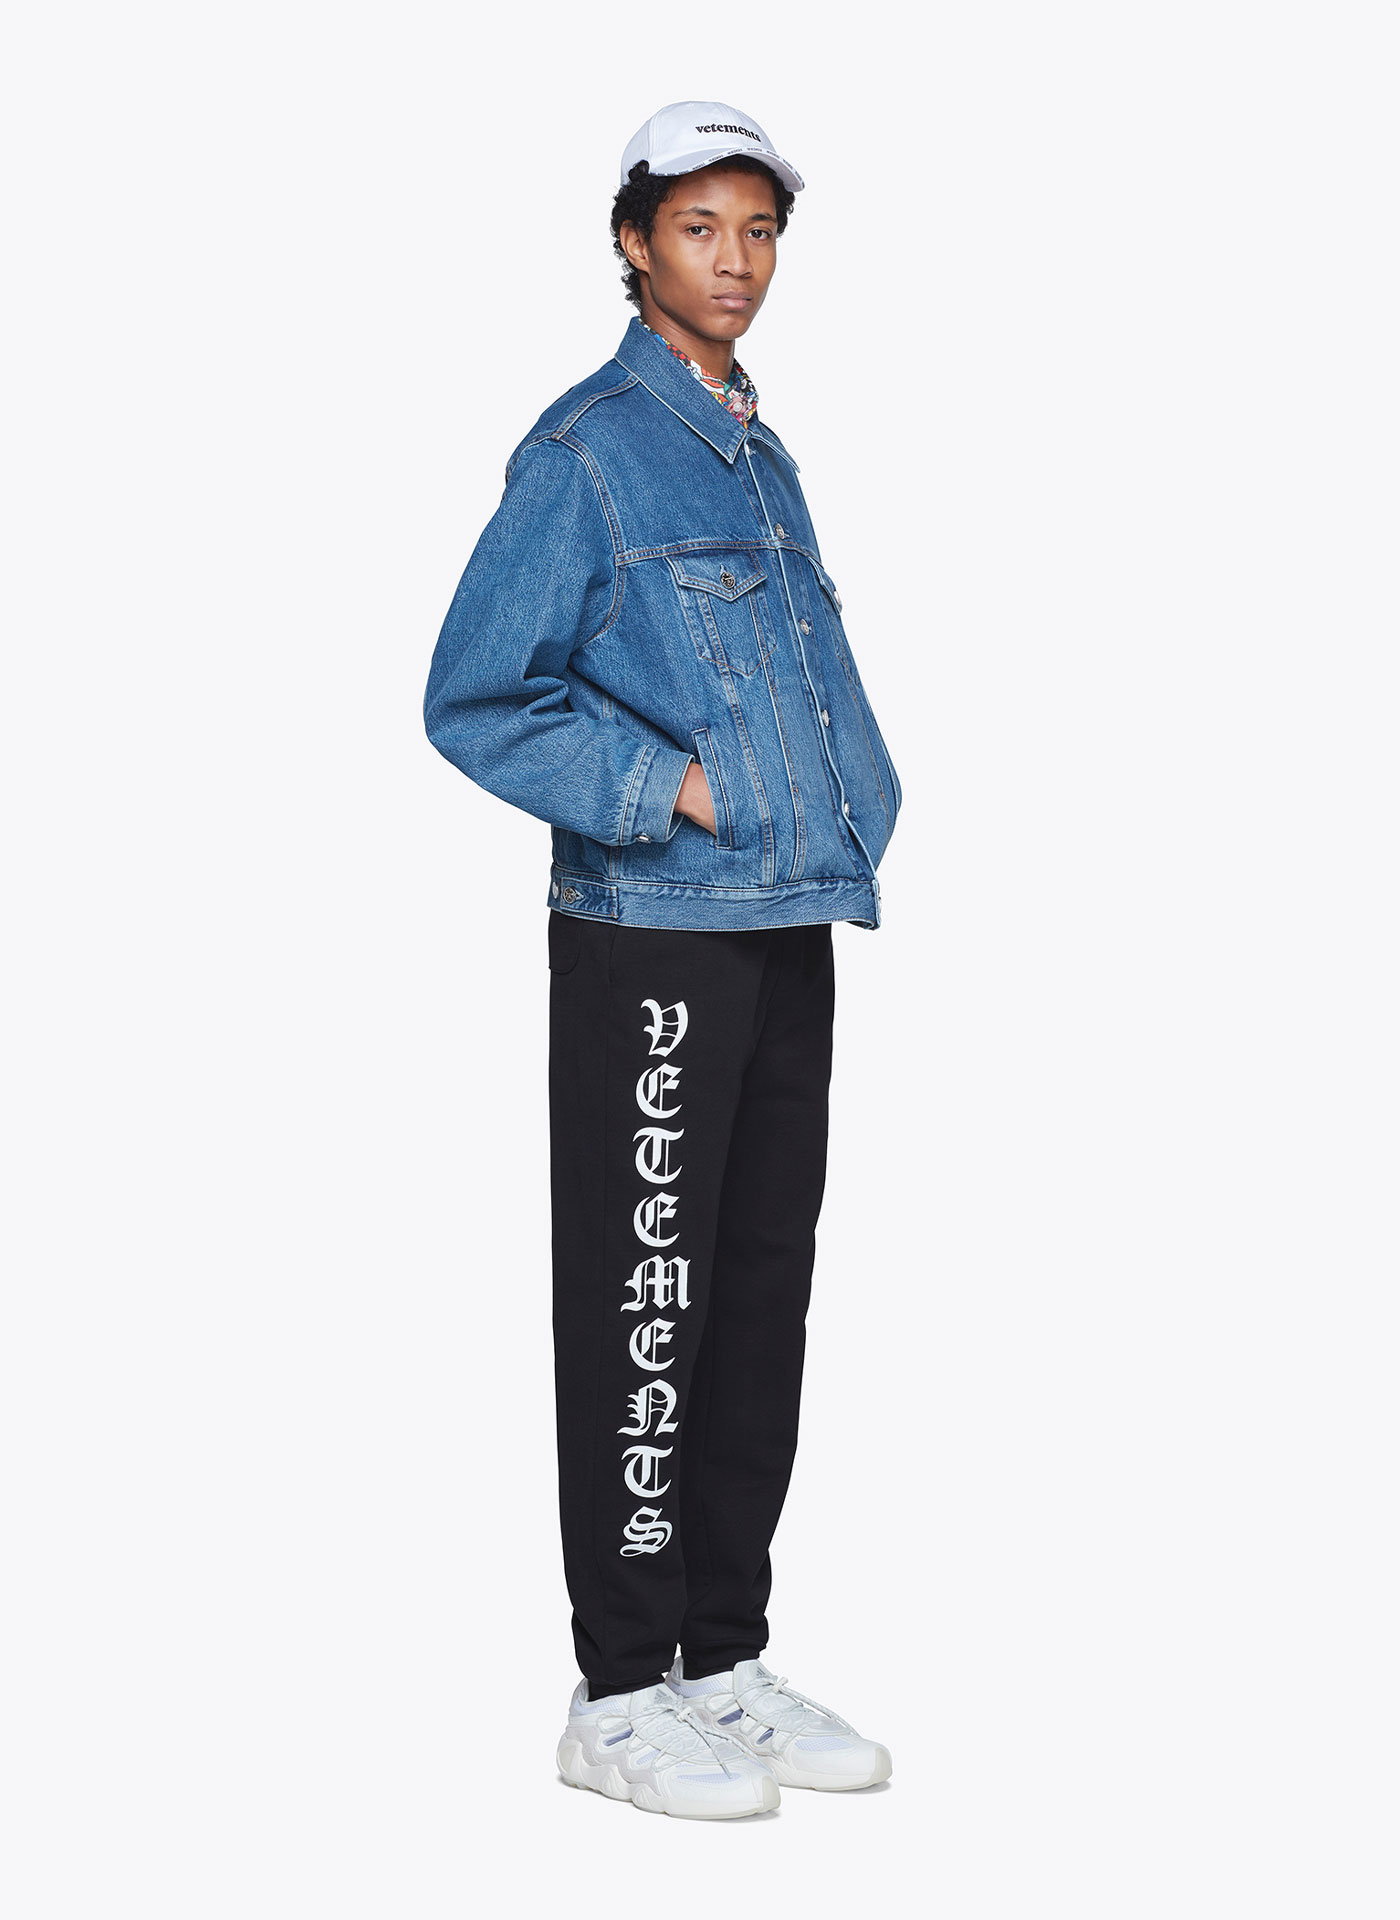 meanswear model with denim jacket, black jogger trousers and a white cap